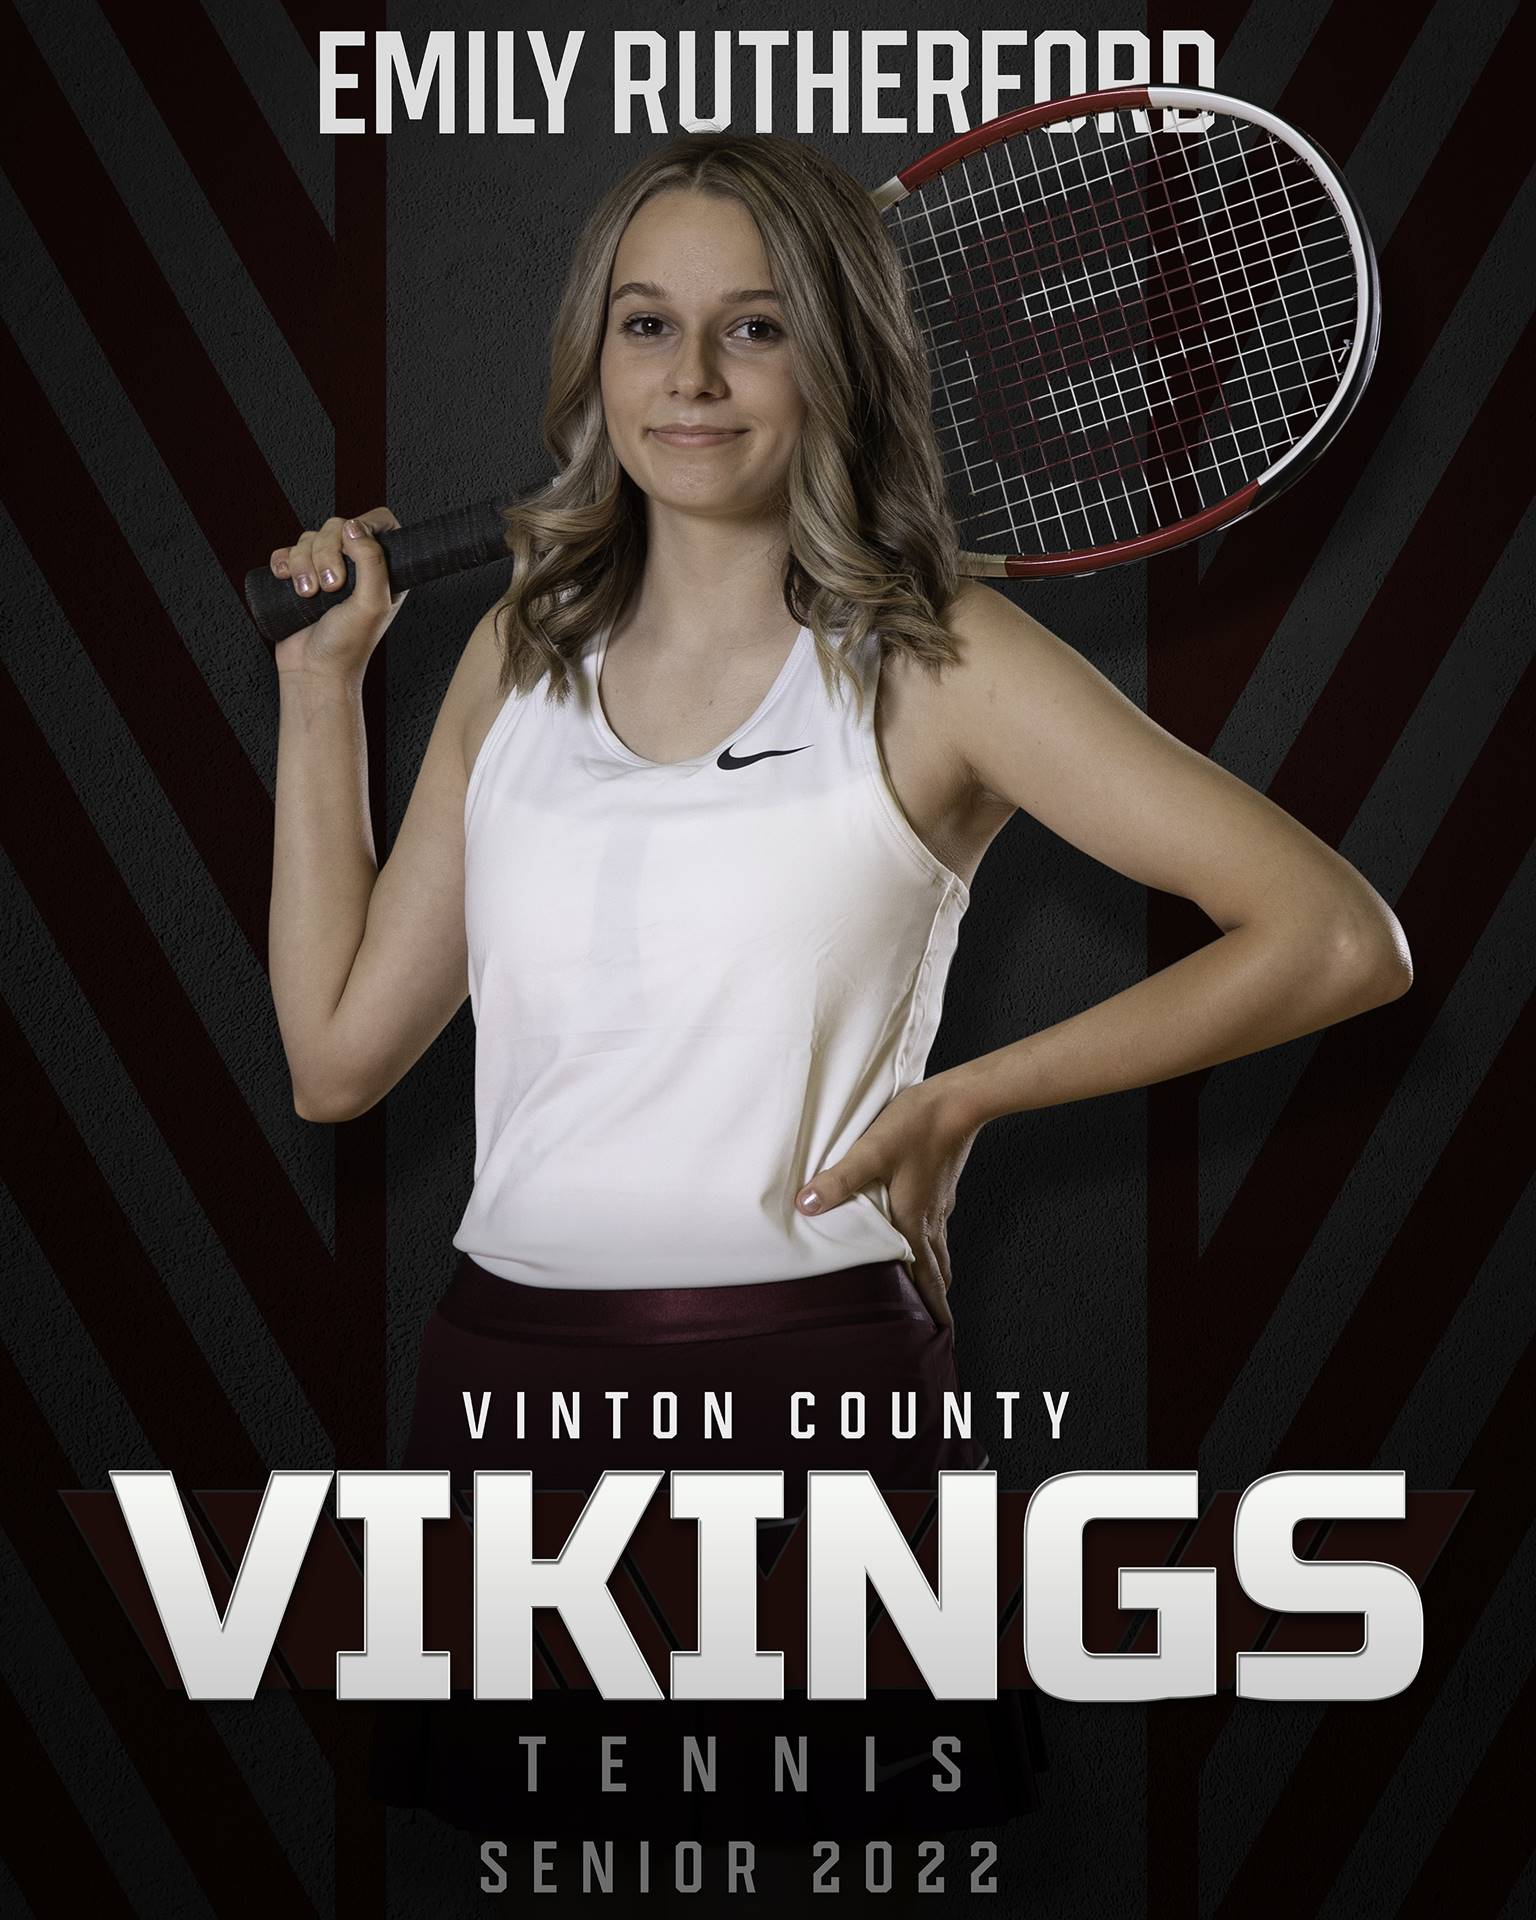 Emily Rutherford - Tennis